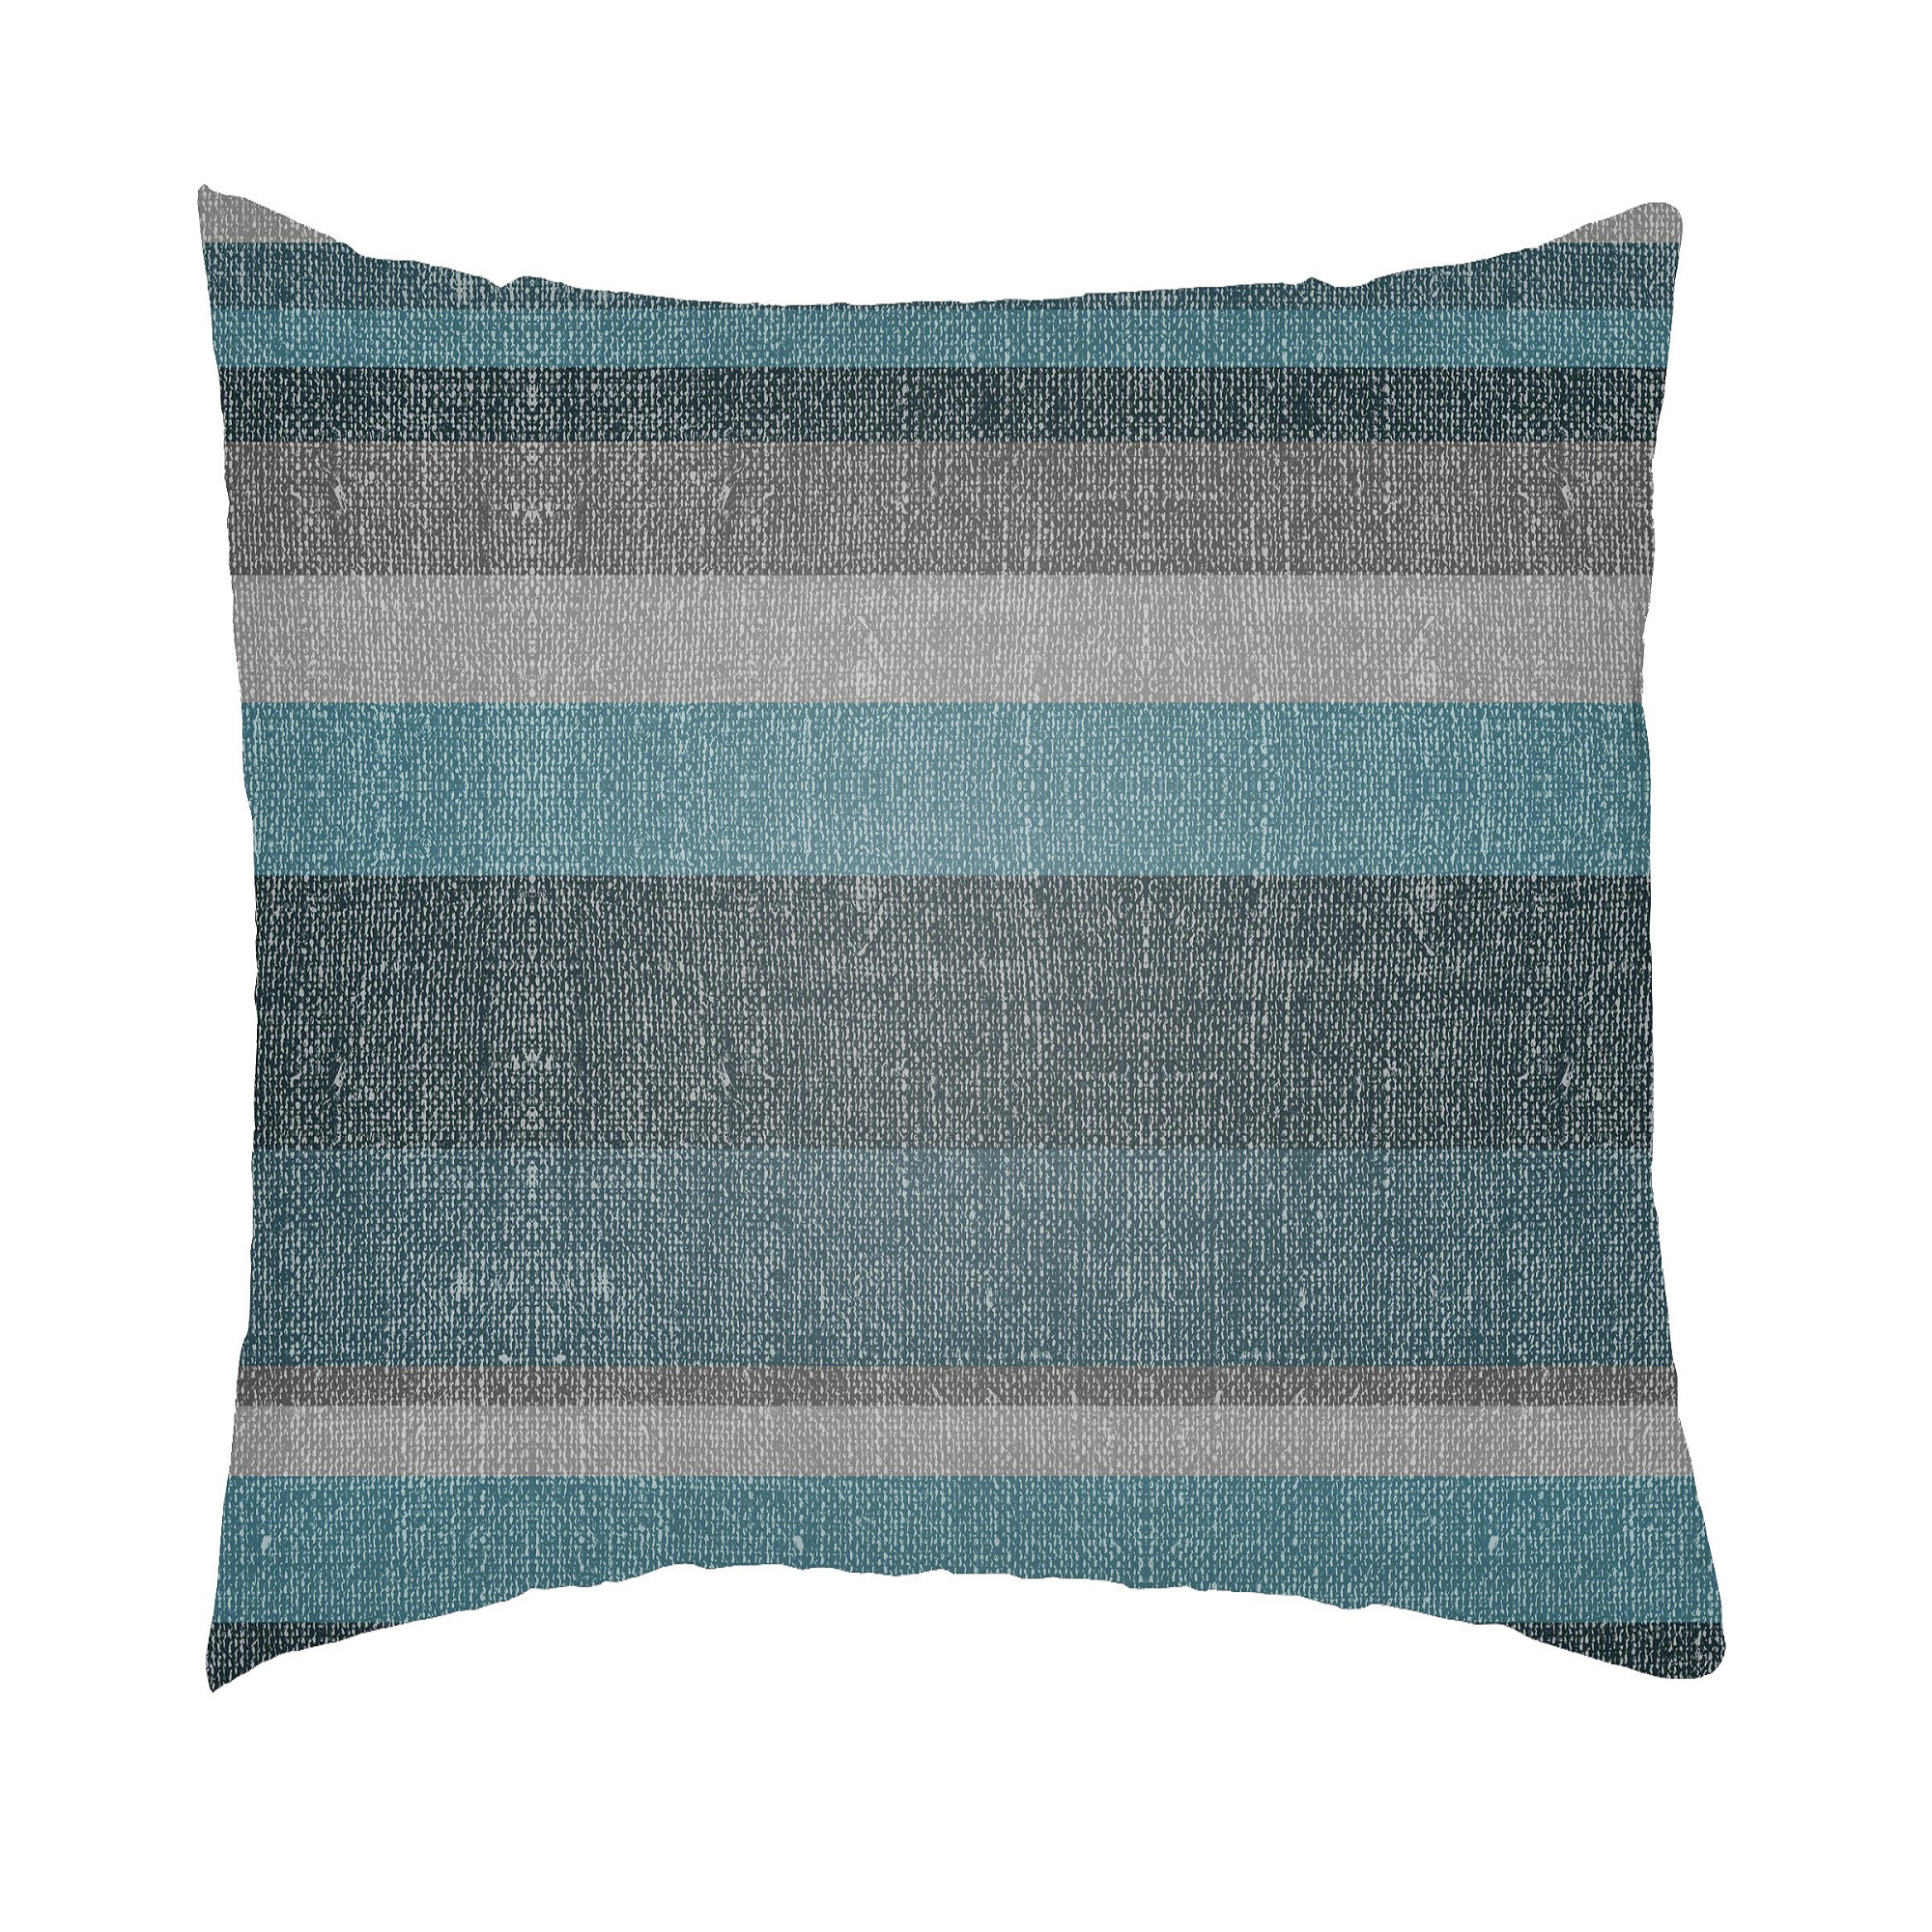 24 Sapphire Blue And Gray Striped Rectangular Throw Pillow Cover Walmart Com Walmart Com